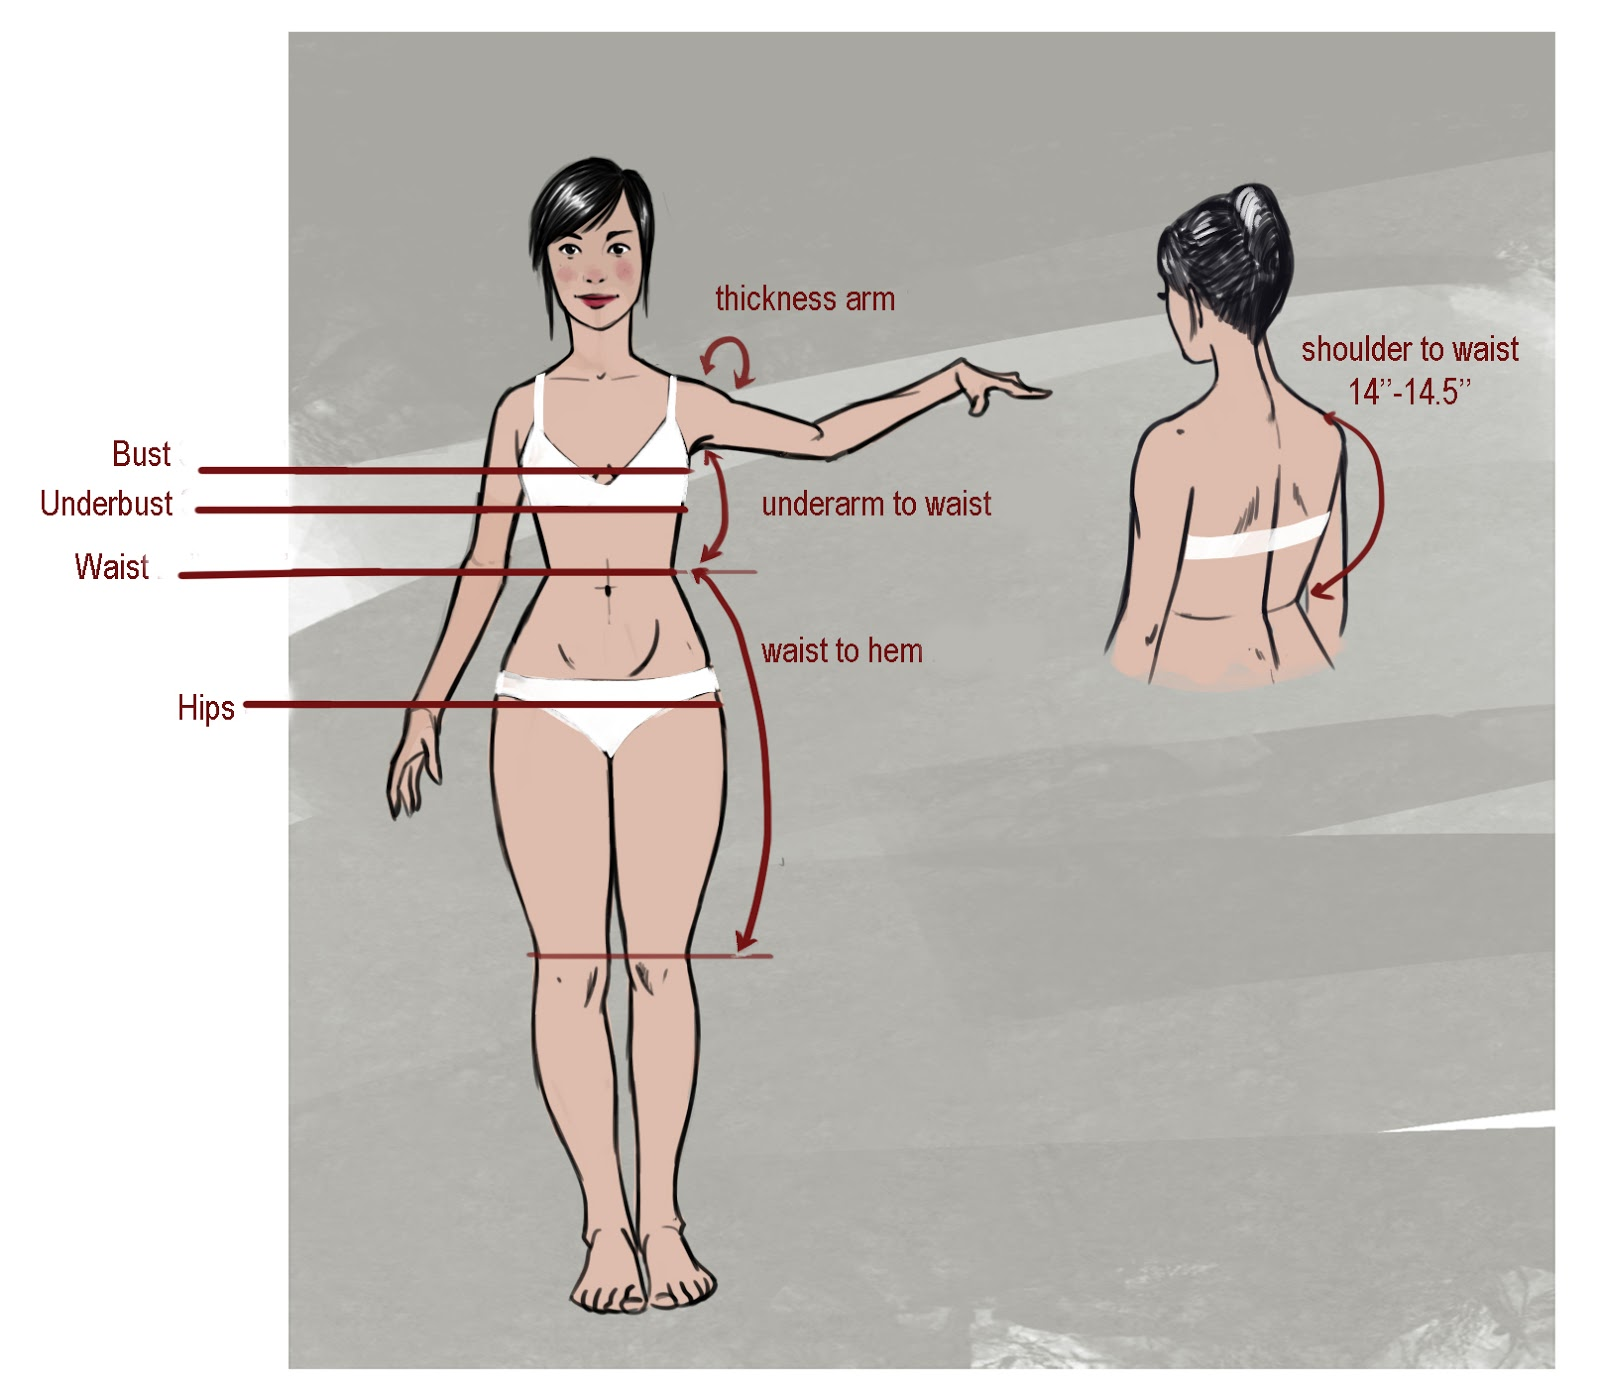 Body shape calculator - find out your body shape! - Styled 24/7